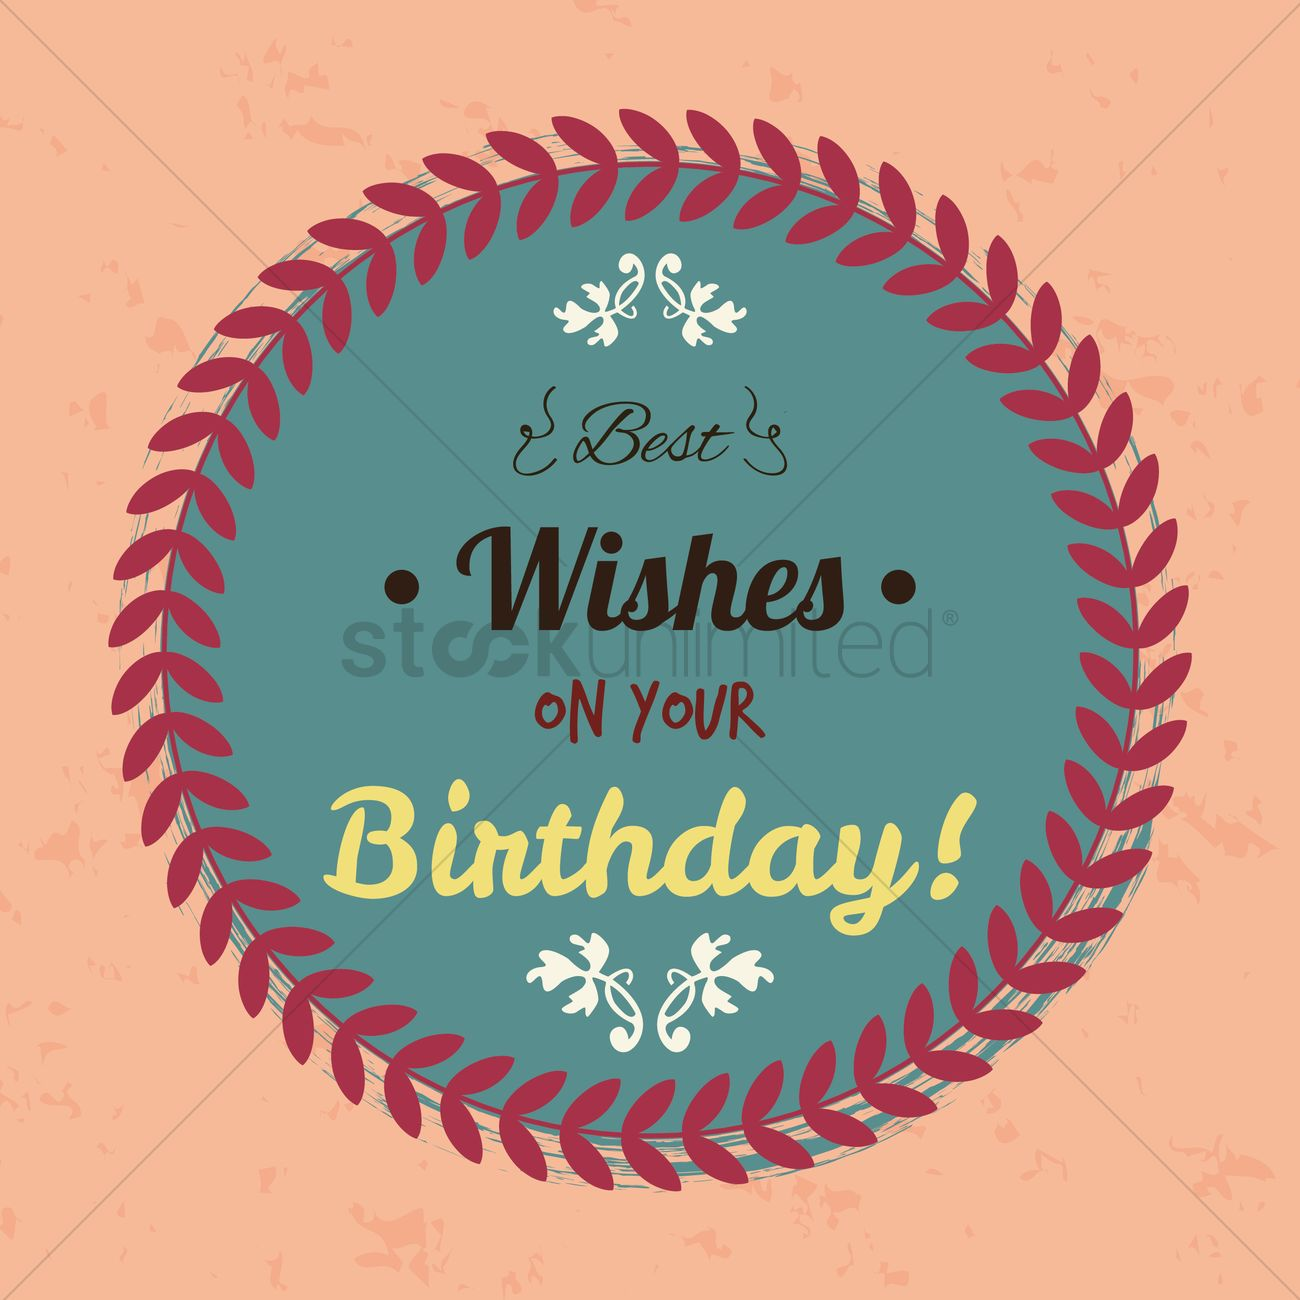 birthday wishes labels ; best-wishes-on-your-birthday-label_1827413